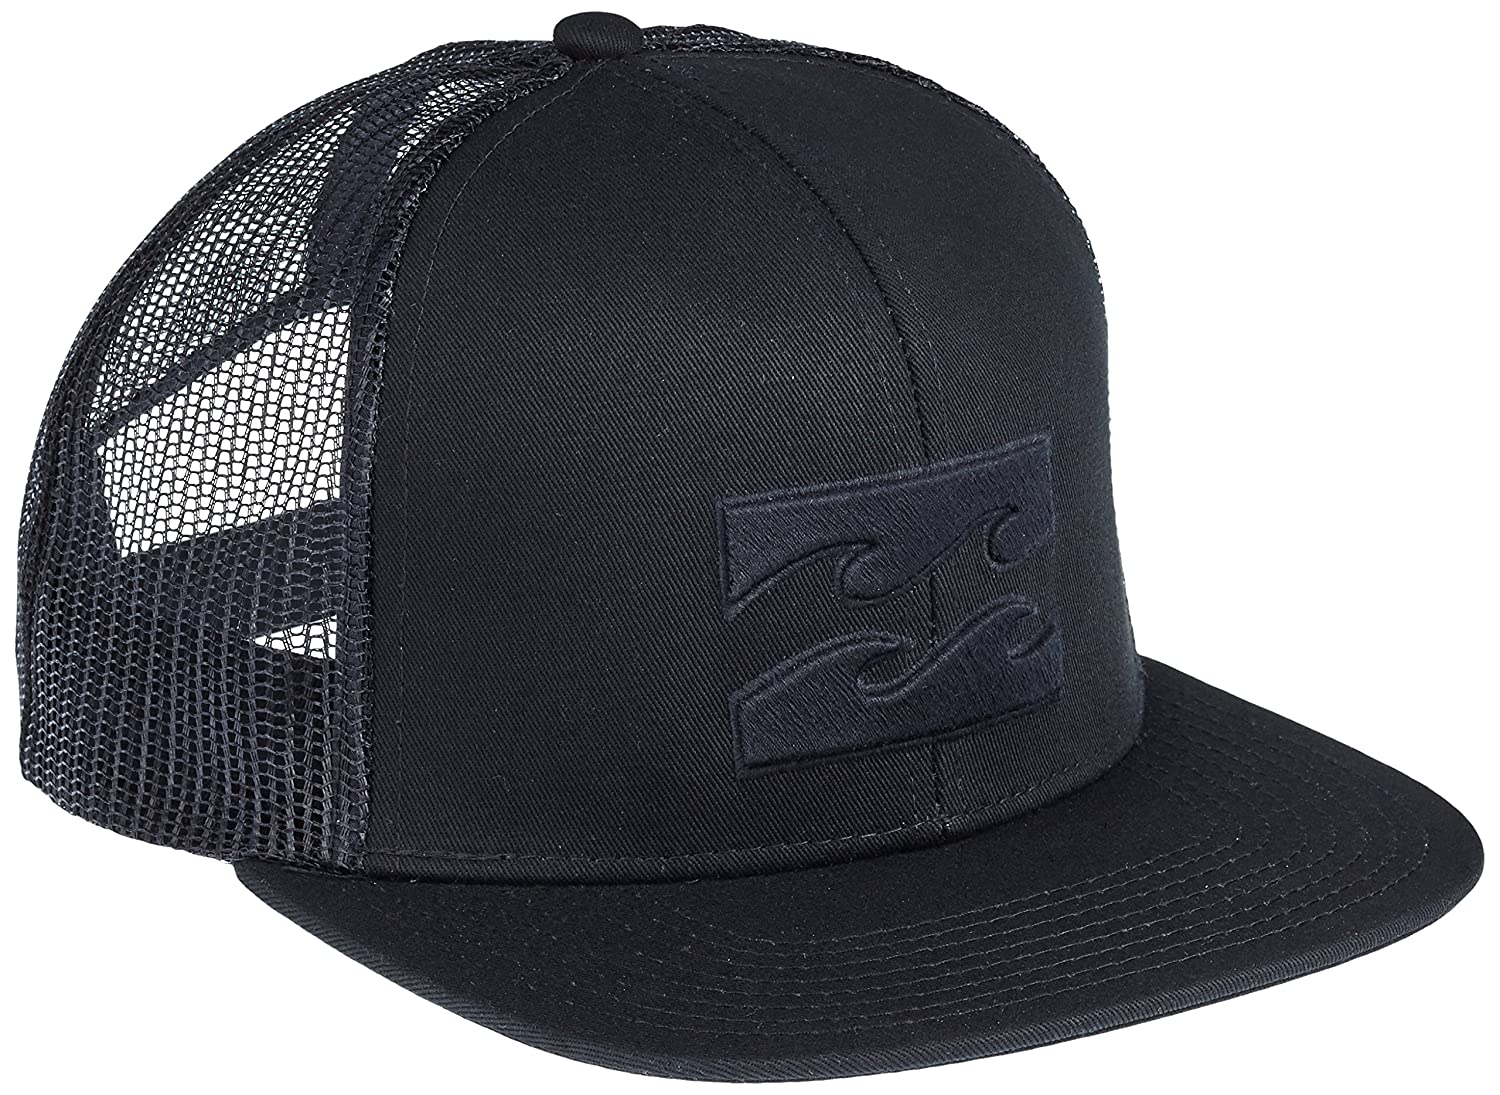 G.S.M. Europe - Billabong All Day Trucker - Gorra, z5ct04 bif6 ...